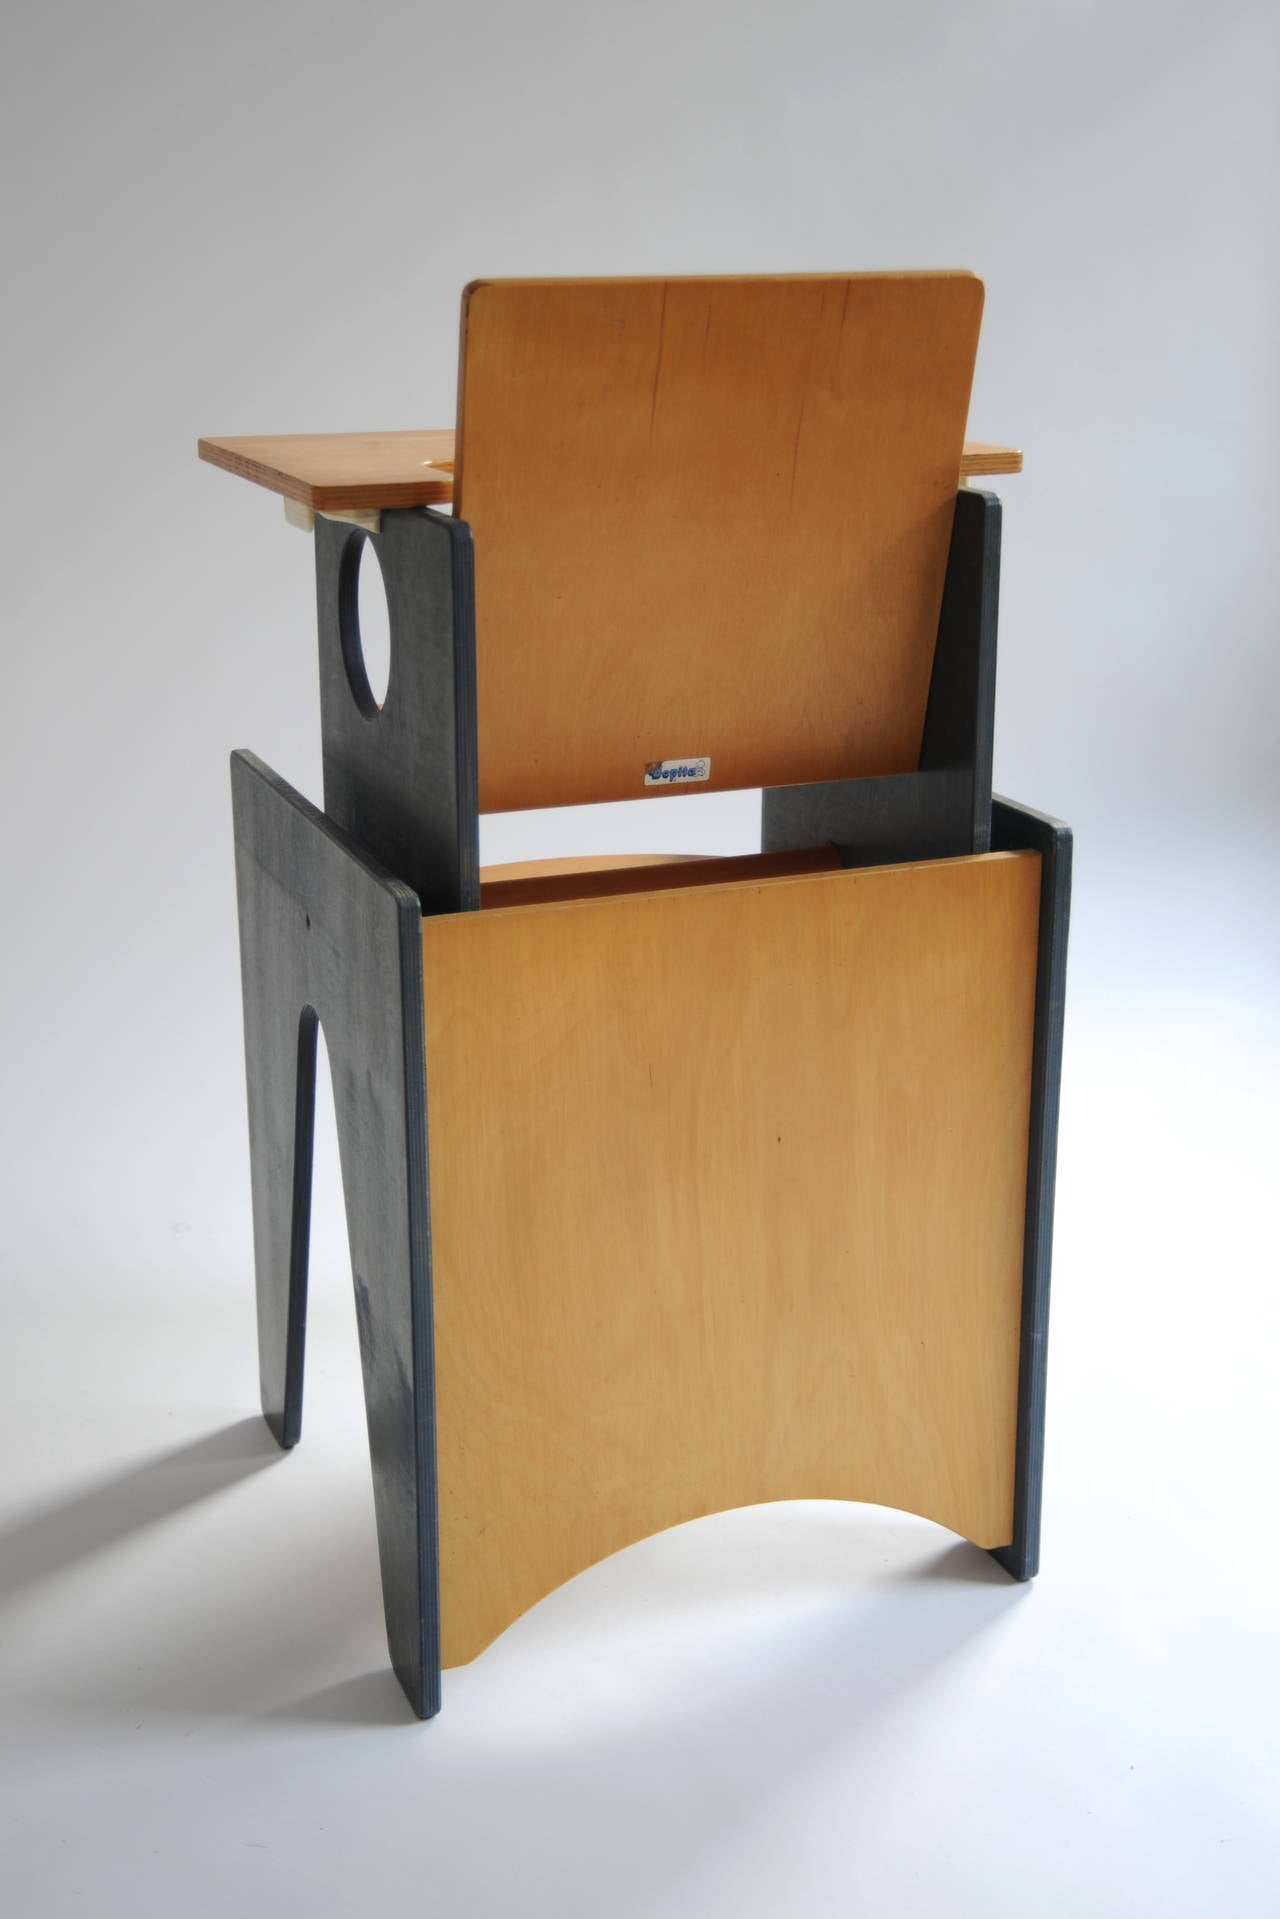 Multifunctional Desk and Chair Set or High Chair by Bopita, circa 1960 7